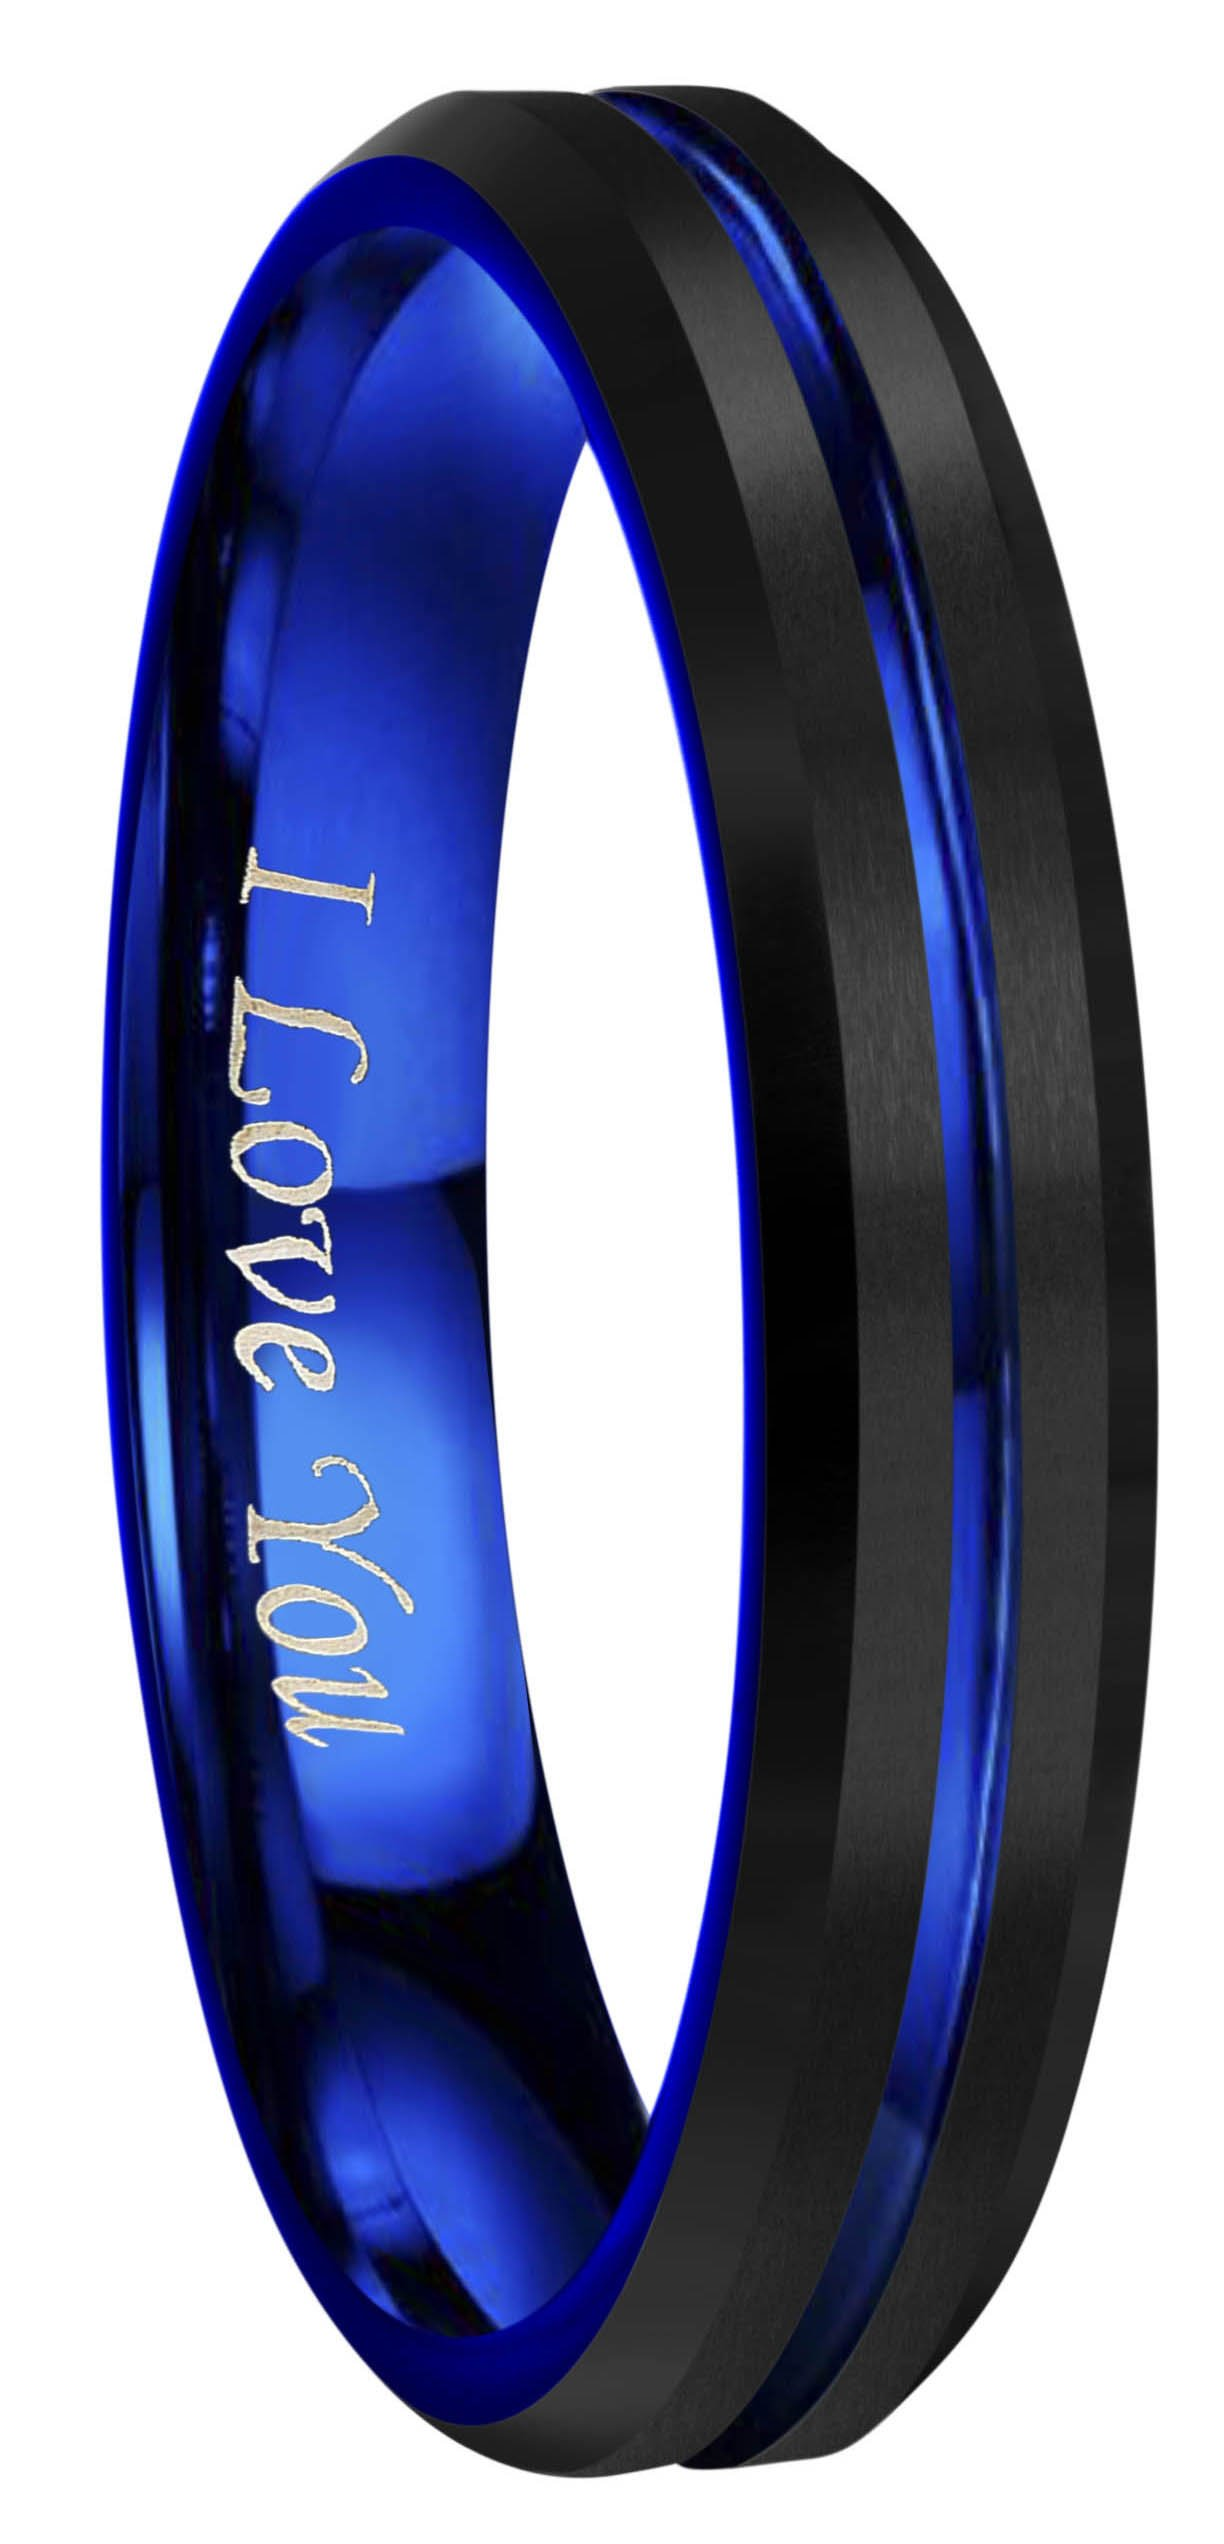 4mm 6mm 8mm 10mm Rose Gold Groove Black Matte Finish Tungsten Carbide Wedding Band Ring EngravedI Love You Size 4 To 17